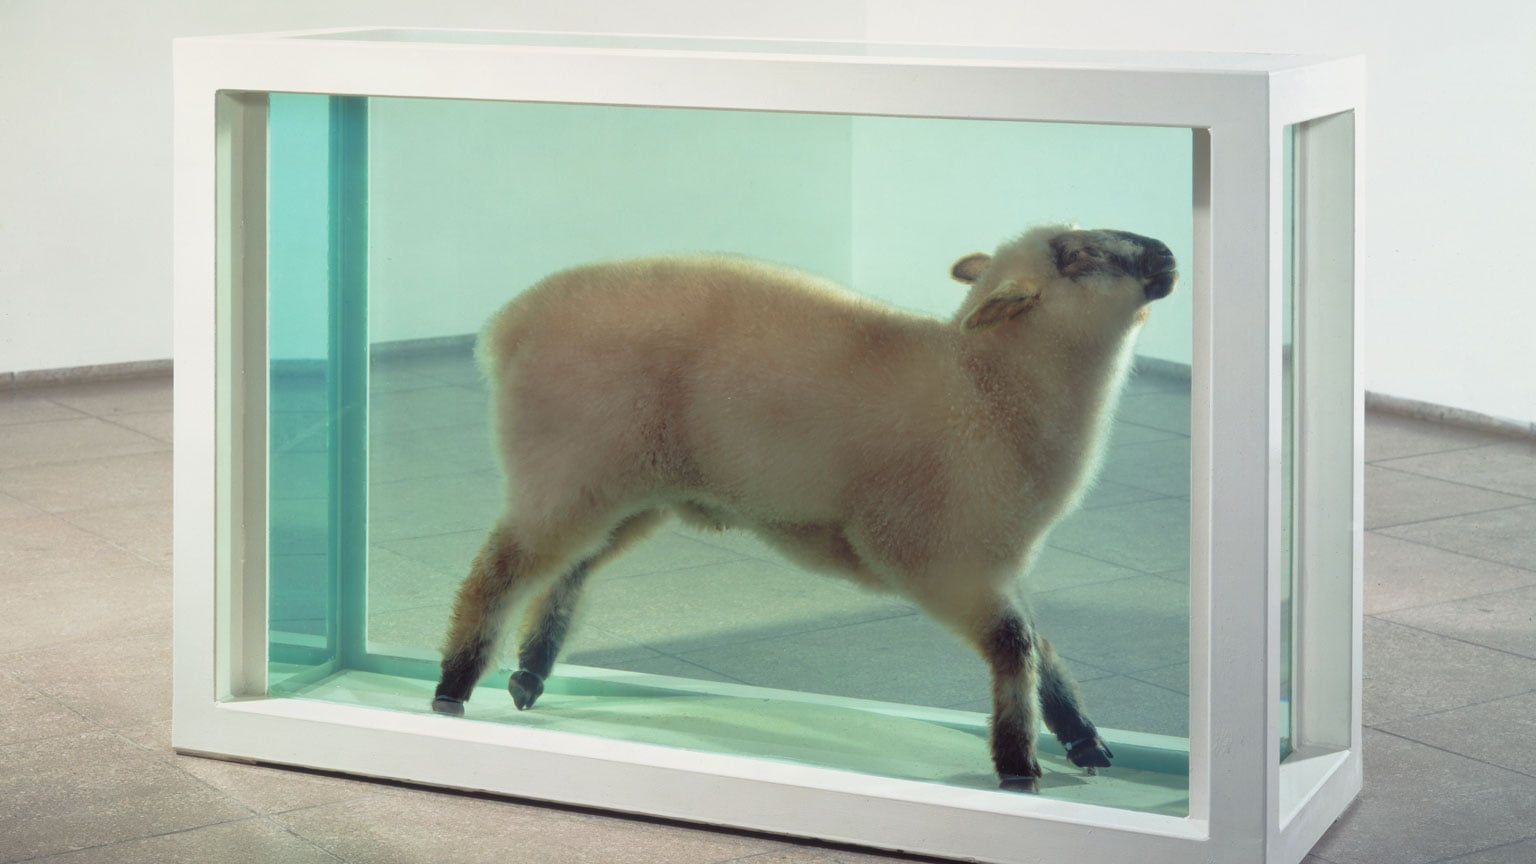 4. Damien Hirst, Pier Arts Centre, free to all - Damien Hirst, Away From the Flock, 1994 © Damien Hirst